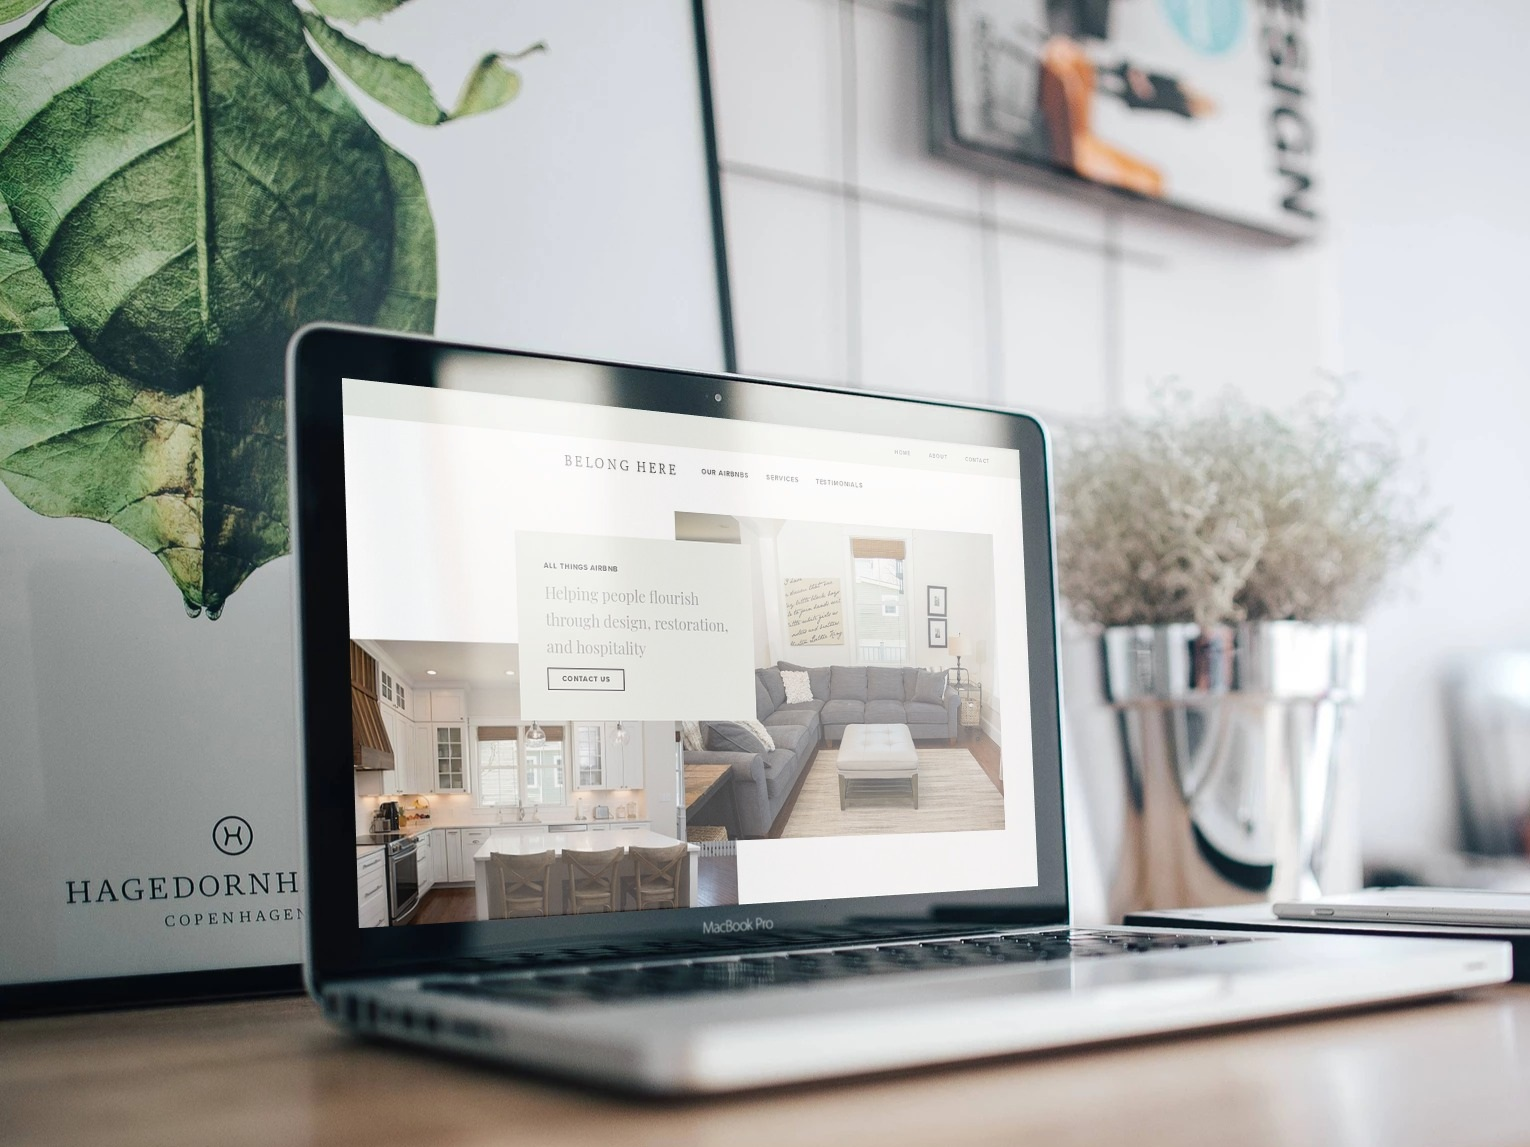 AMAZING WEBSITESin 90 days or less! - About 90 Marketing is a web design company based in Virginia that specializes in Squarespace and WordPress membership sites for small businesses & non-profits.